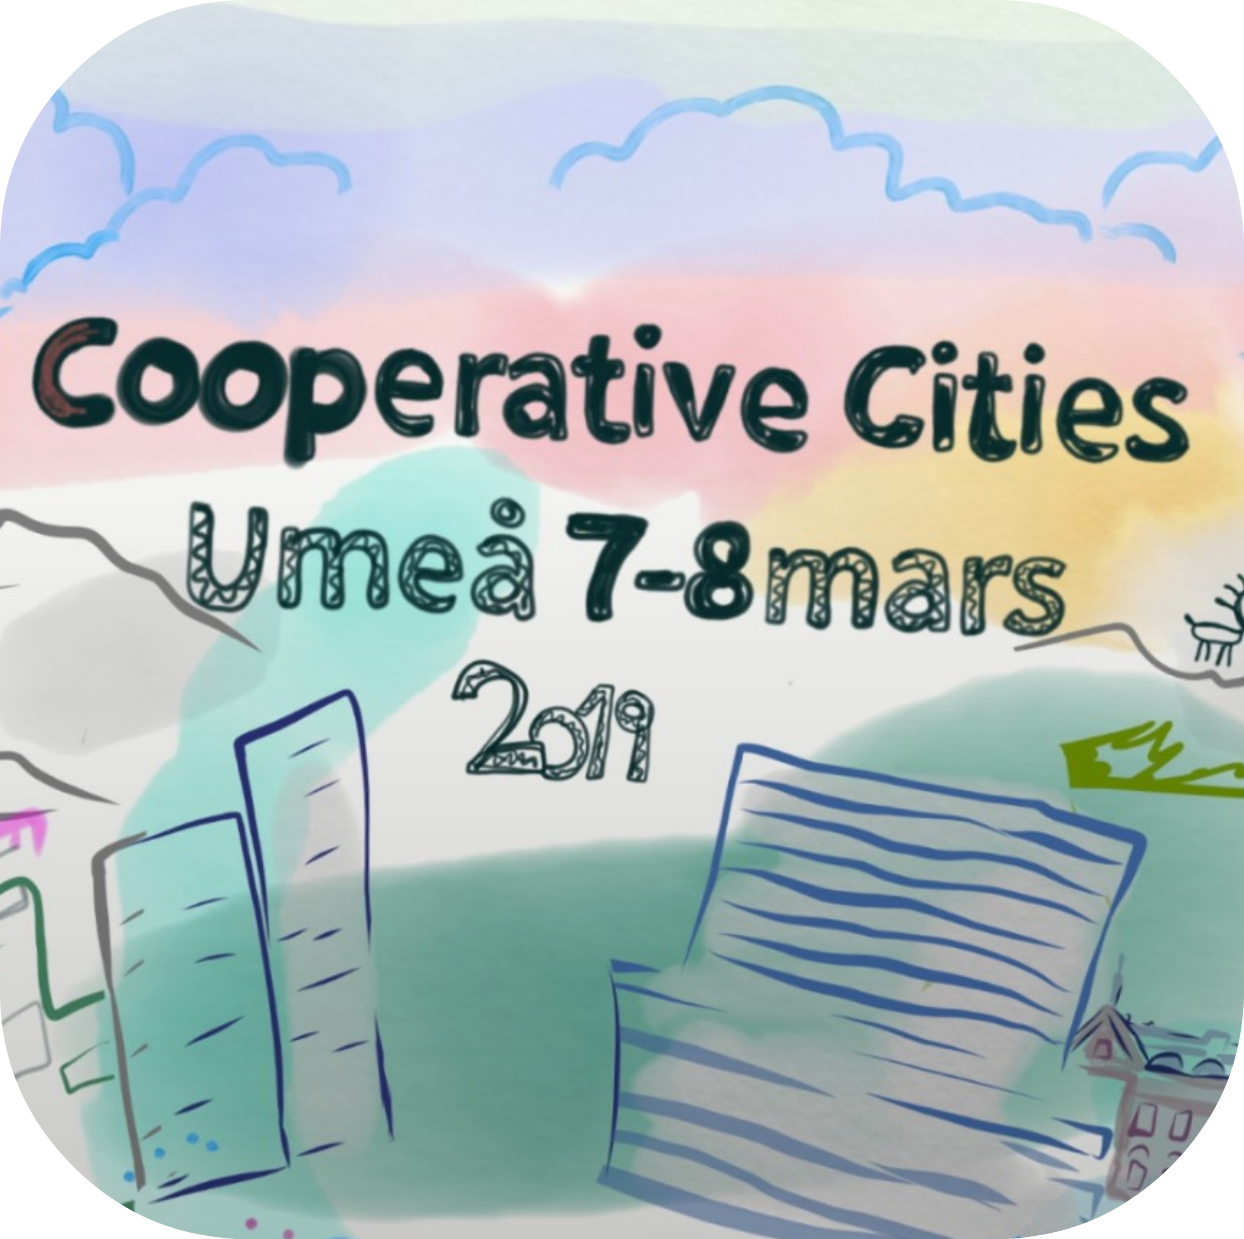 cooperative cities umea_rounded_corners.png